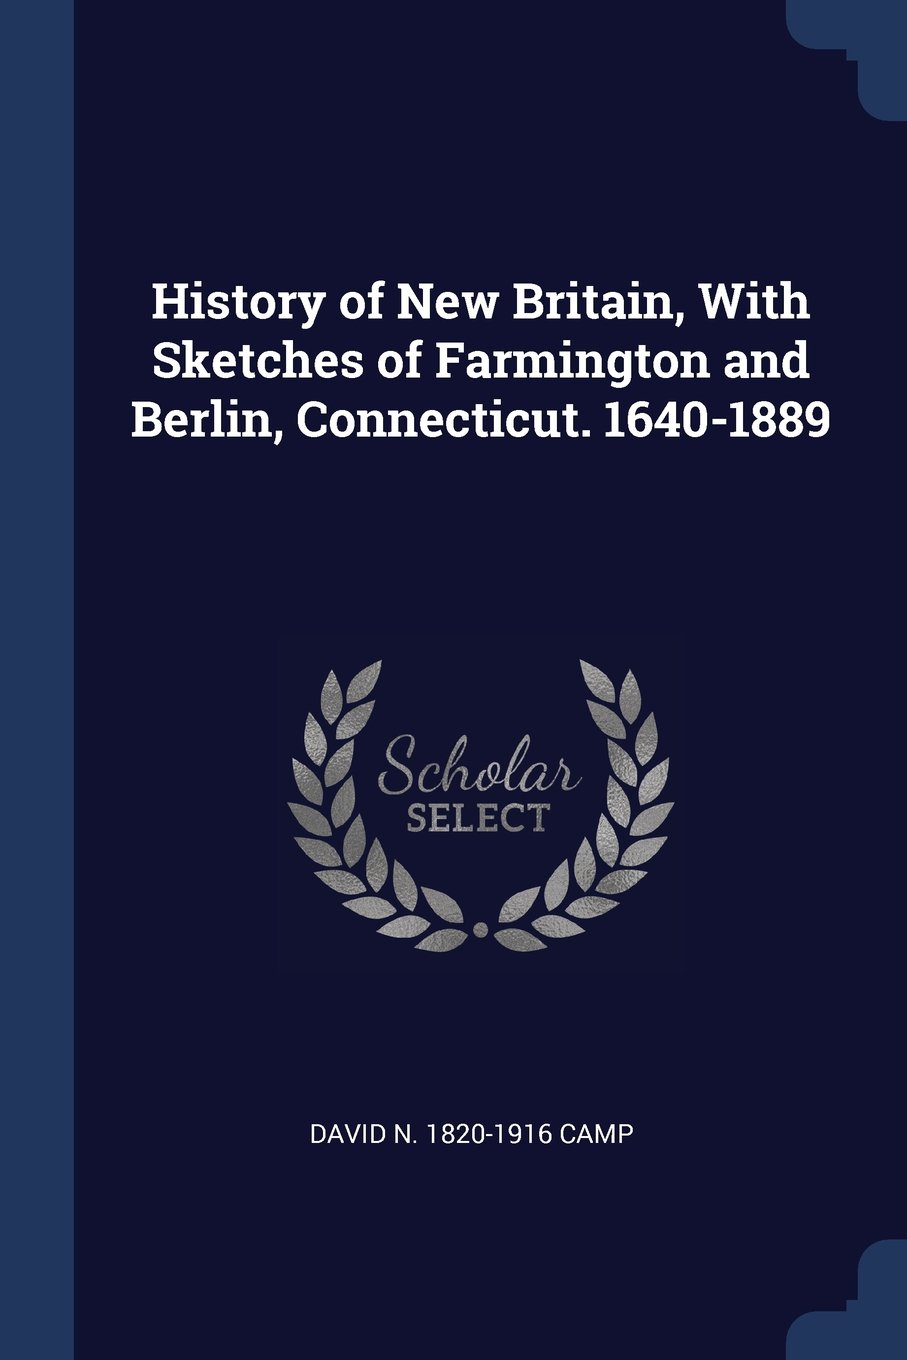 History of New Britain, With Sketches of Farmington and Berlin, Connecticut. 1640-1889 ebook